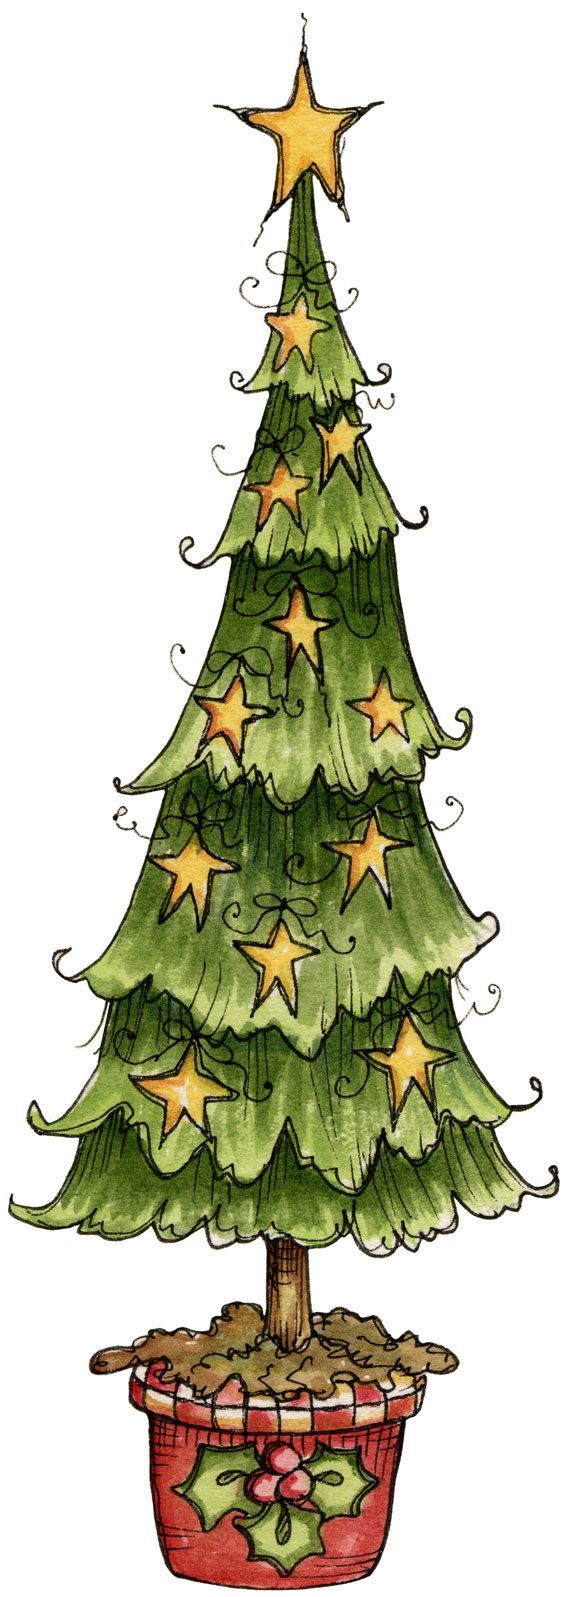 Image result for the grinch christmas tree clip art ...